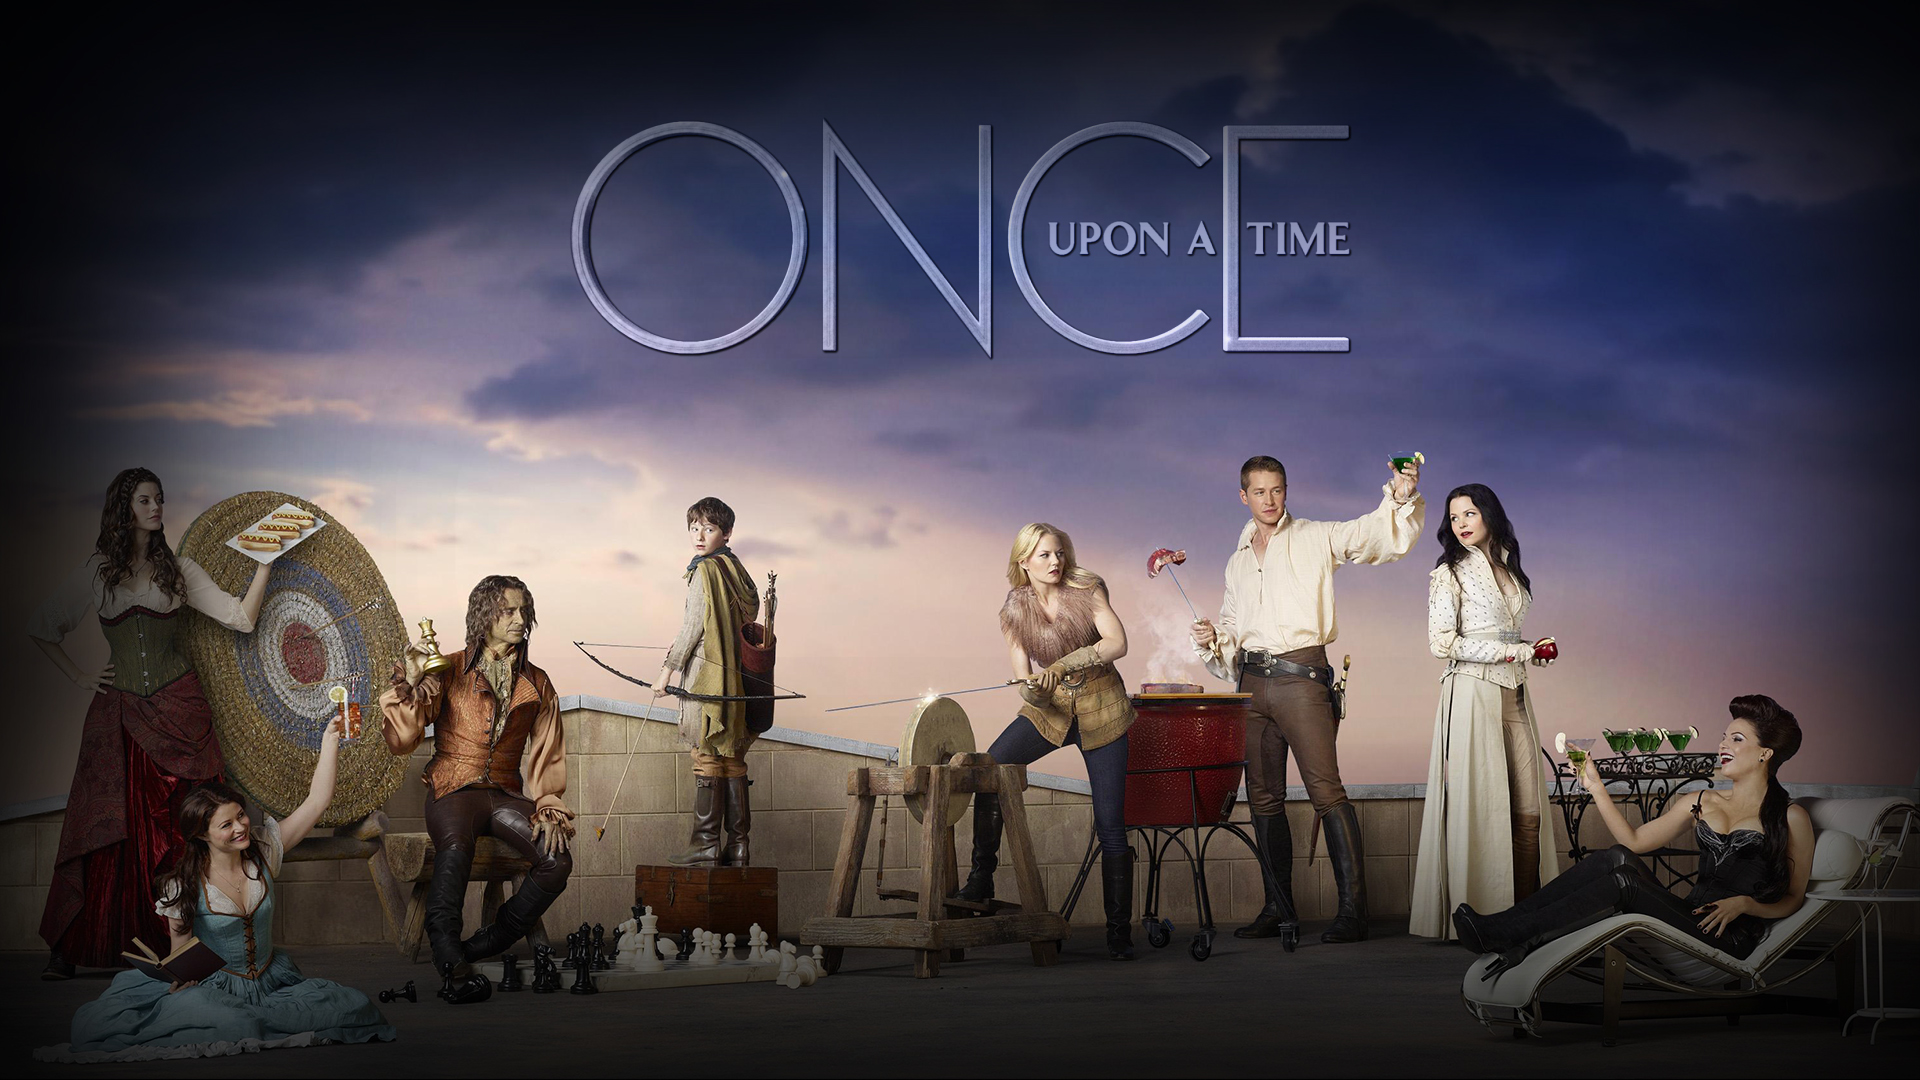 Once Upon A Time Wallpaper 12 By Alexandreholz On Deviantart